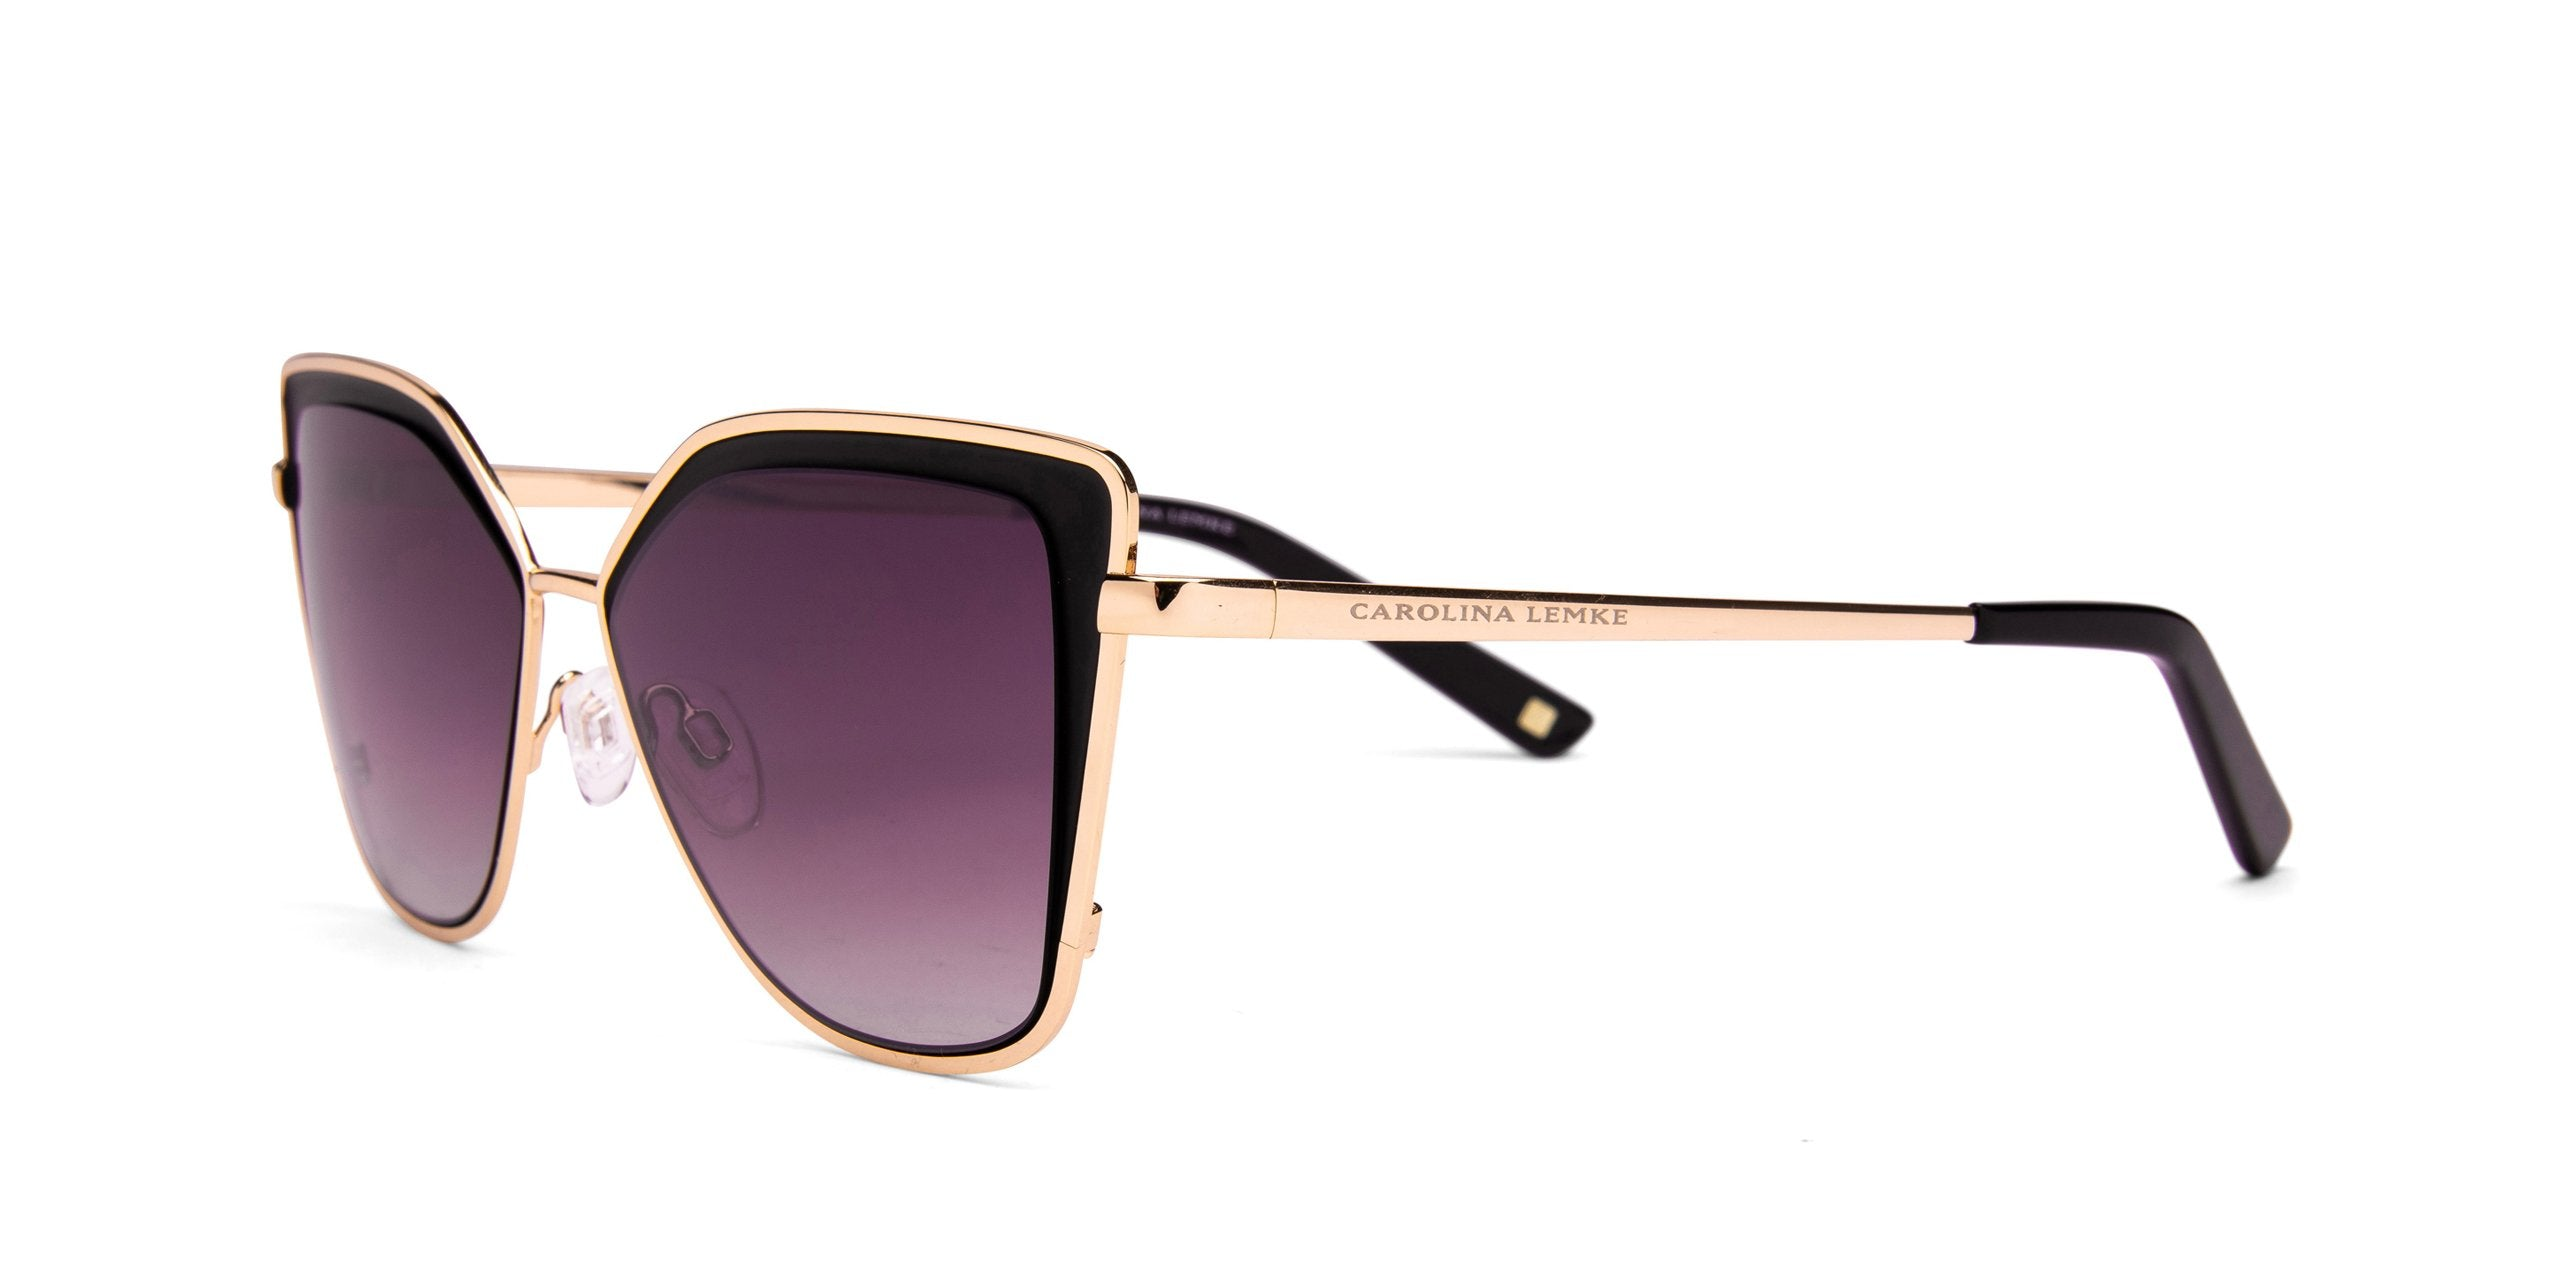 FRAME Matt Black Gold LENS Gradient Smoke